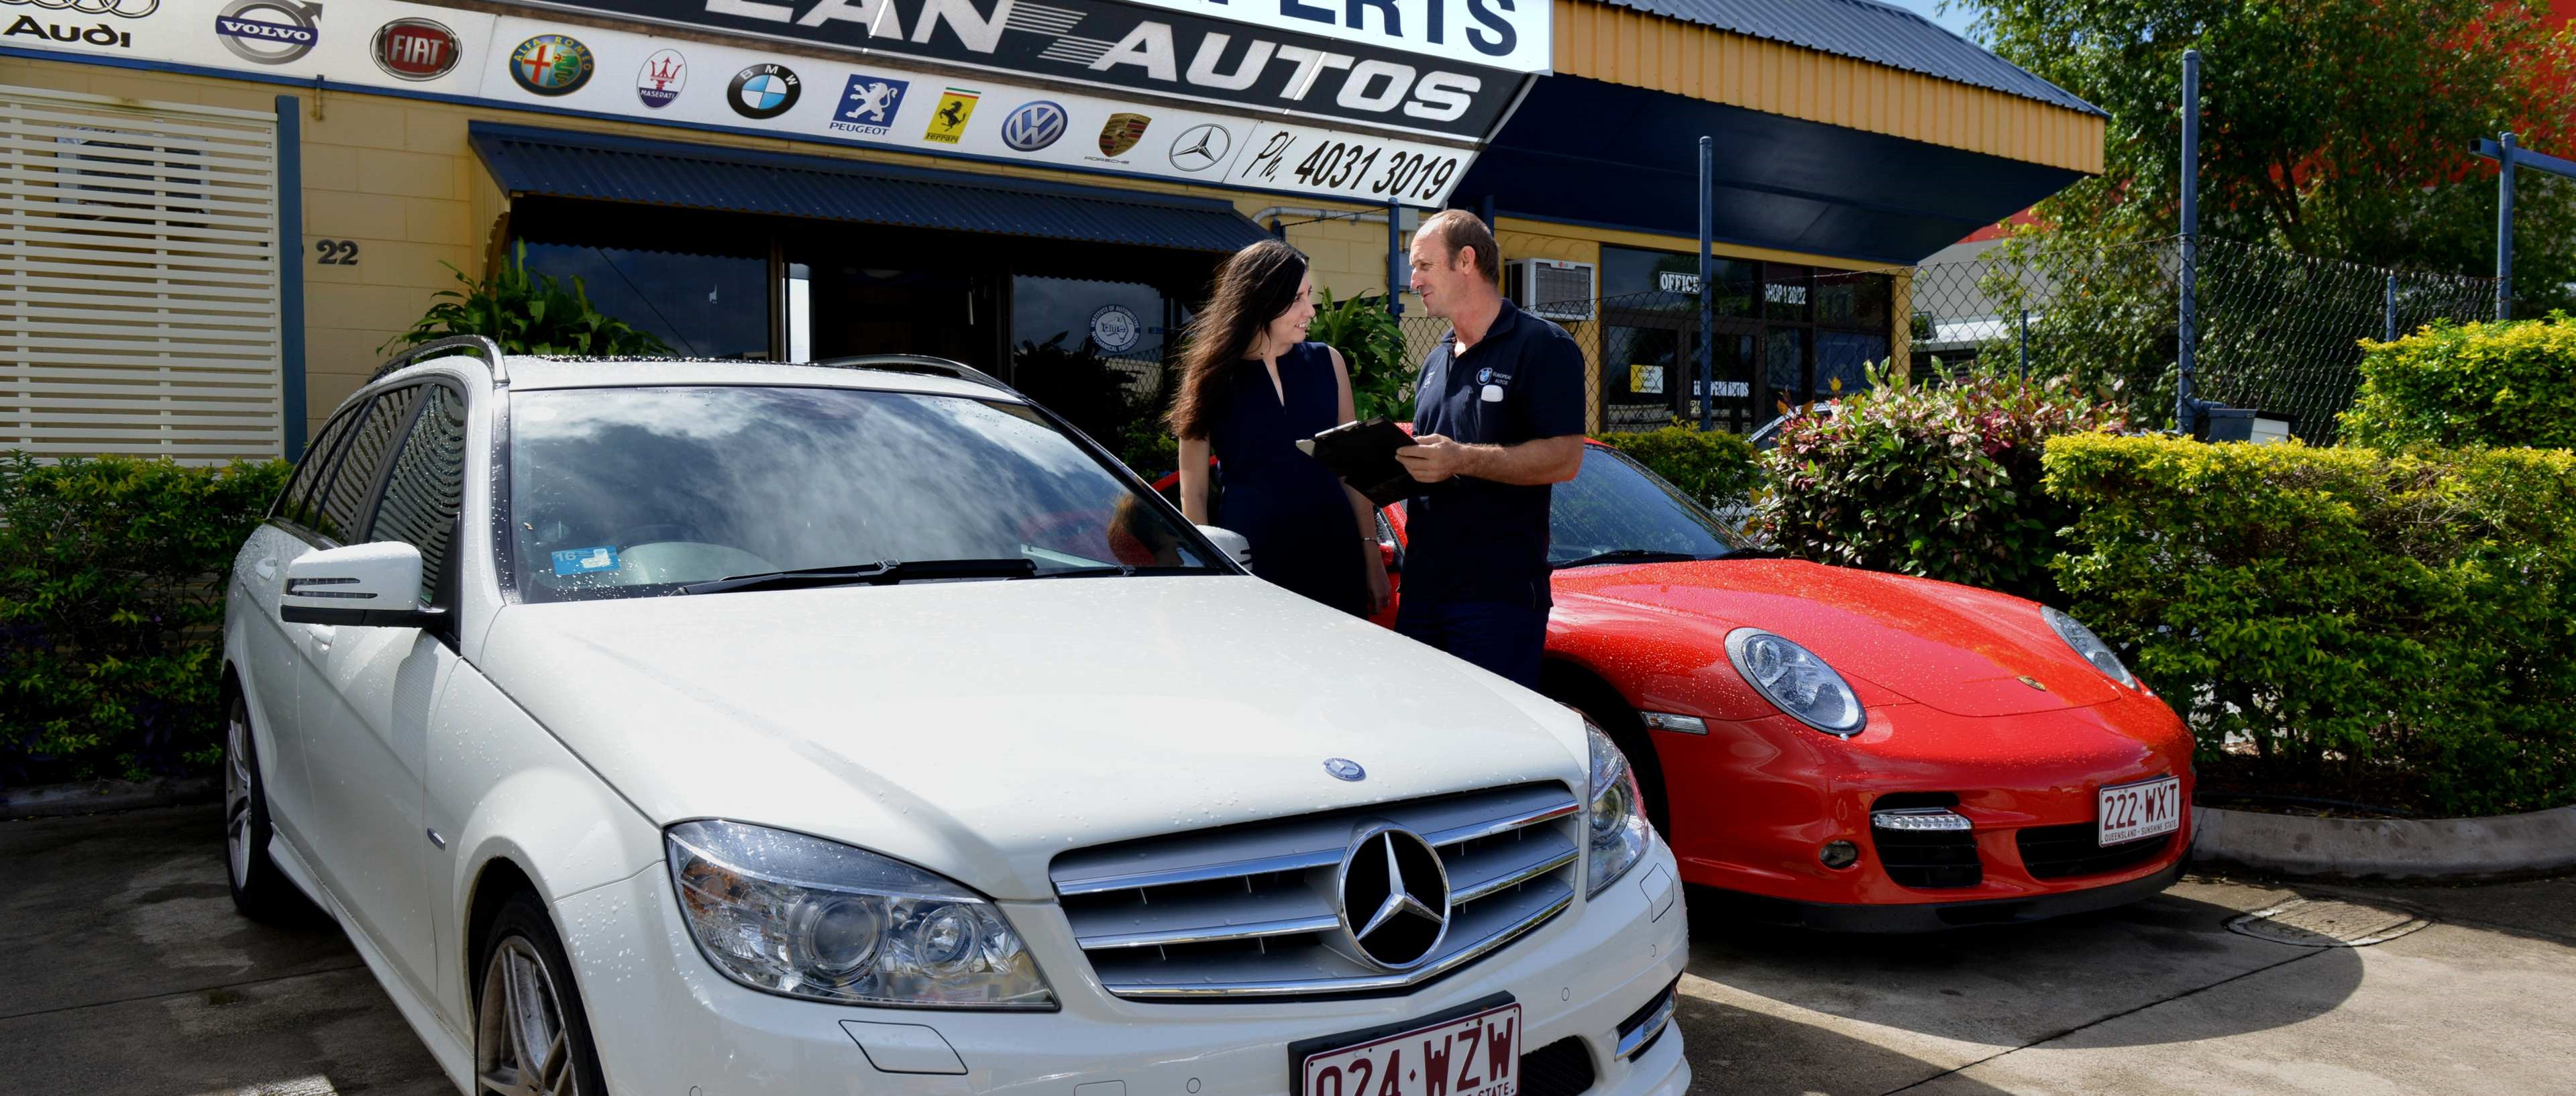 euro cars cairns